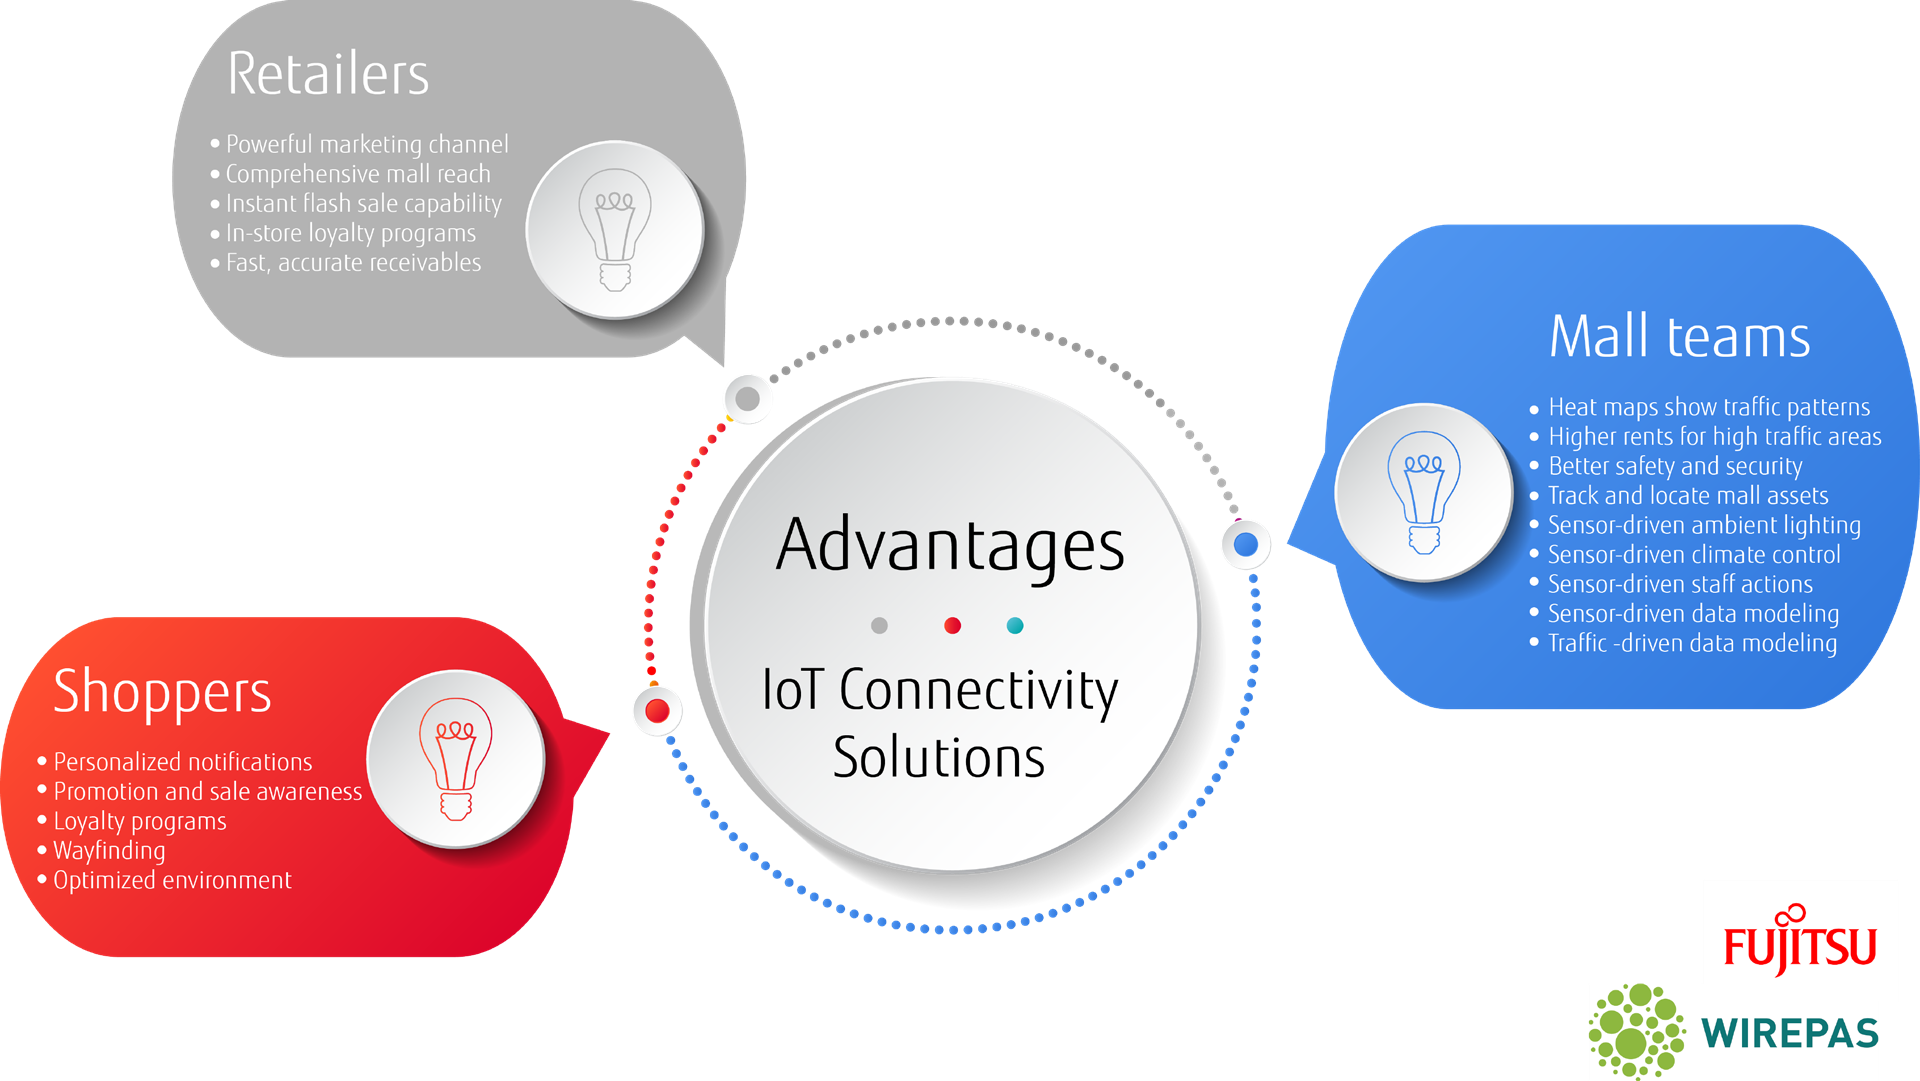 Advantages of IoT solutions